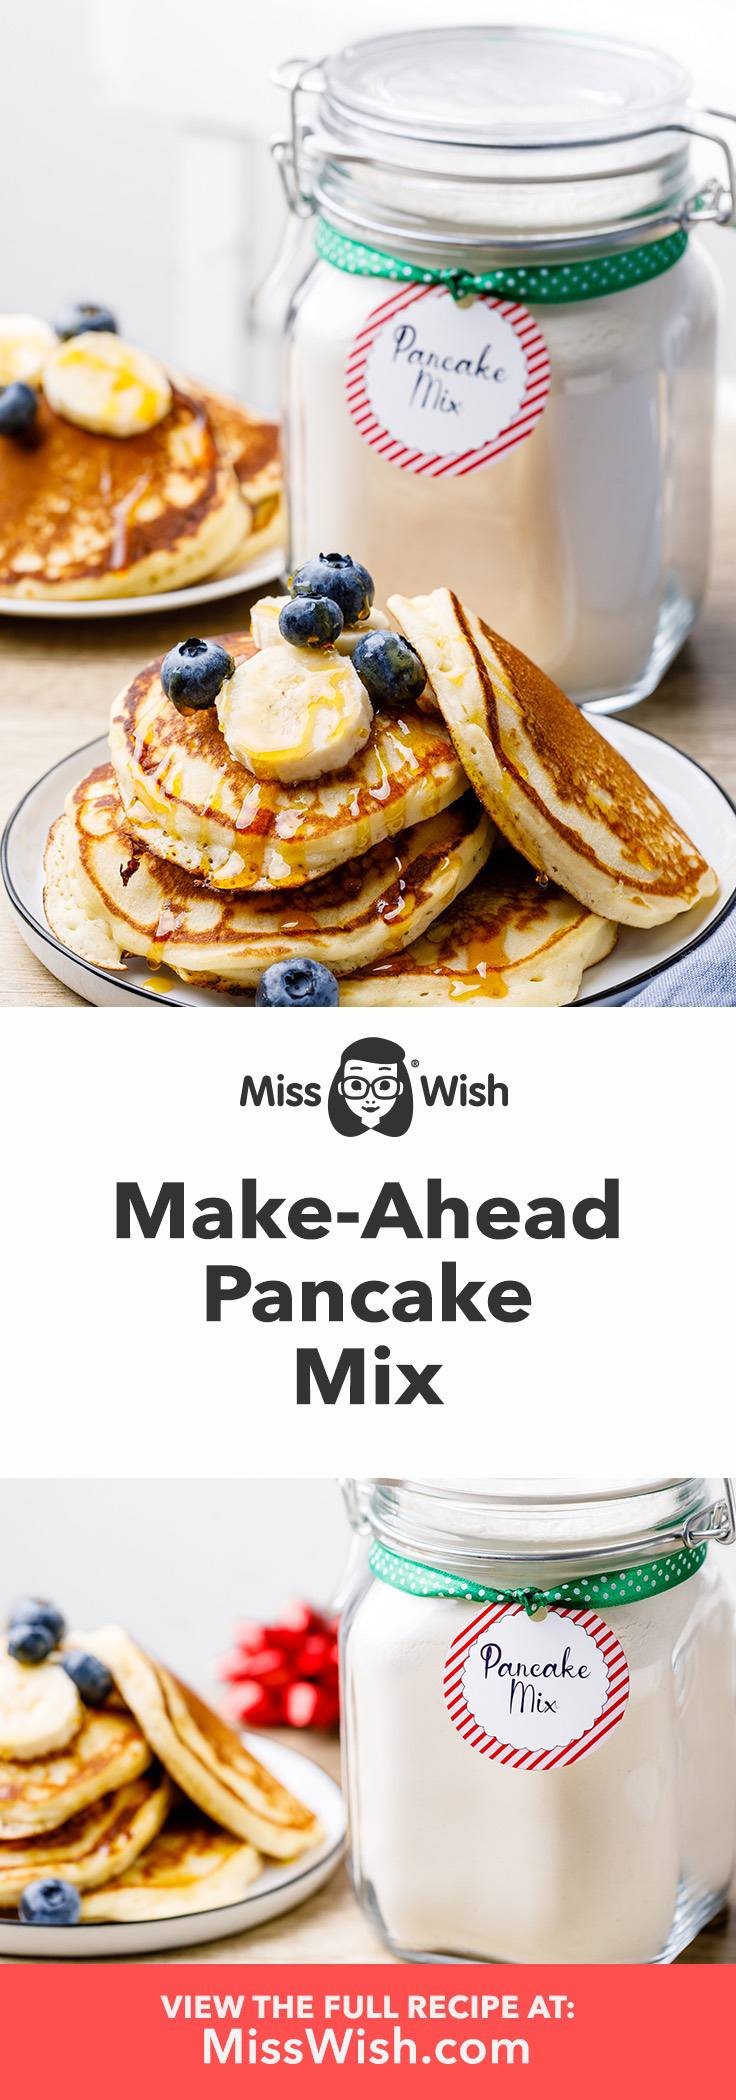 Easy make-ahead homemade pancake mix recipe.